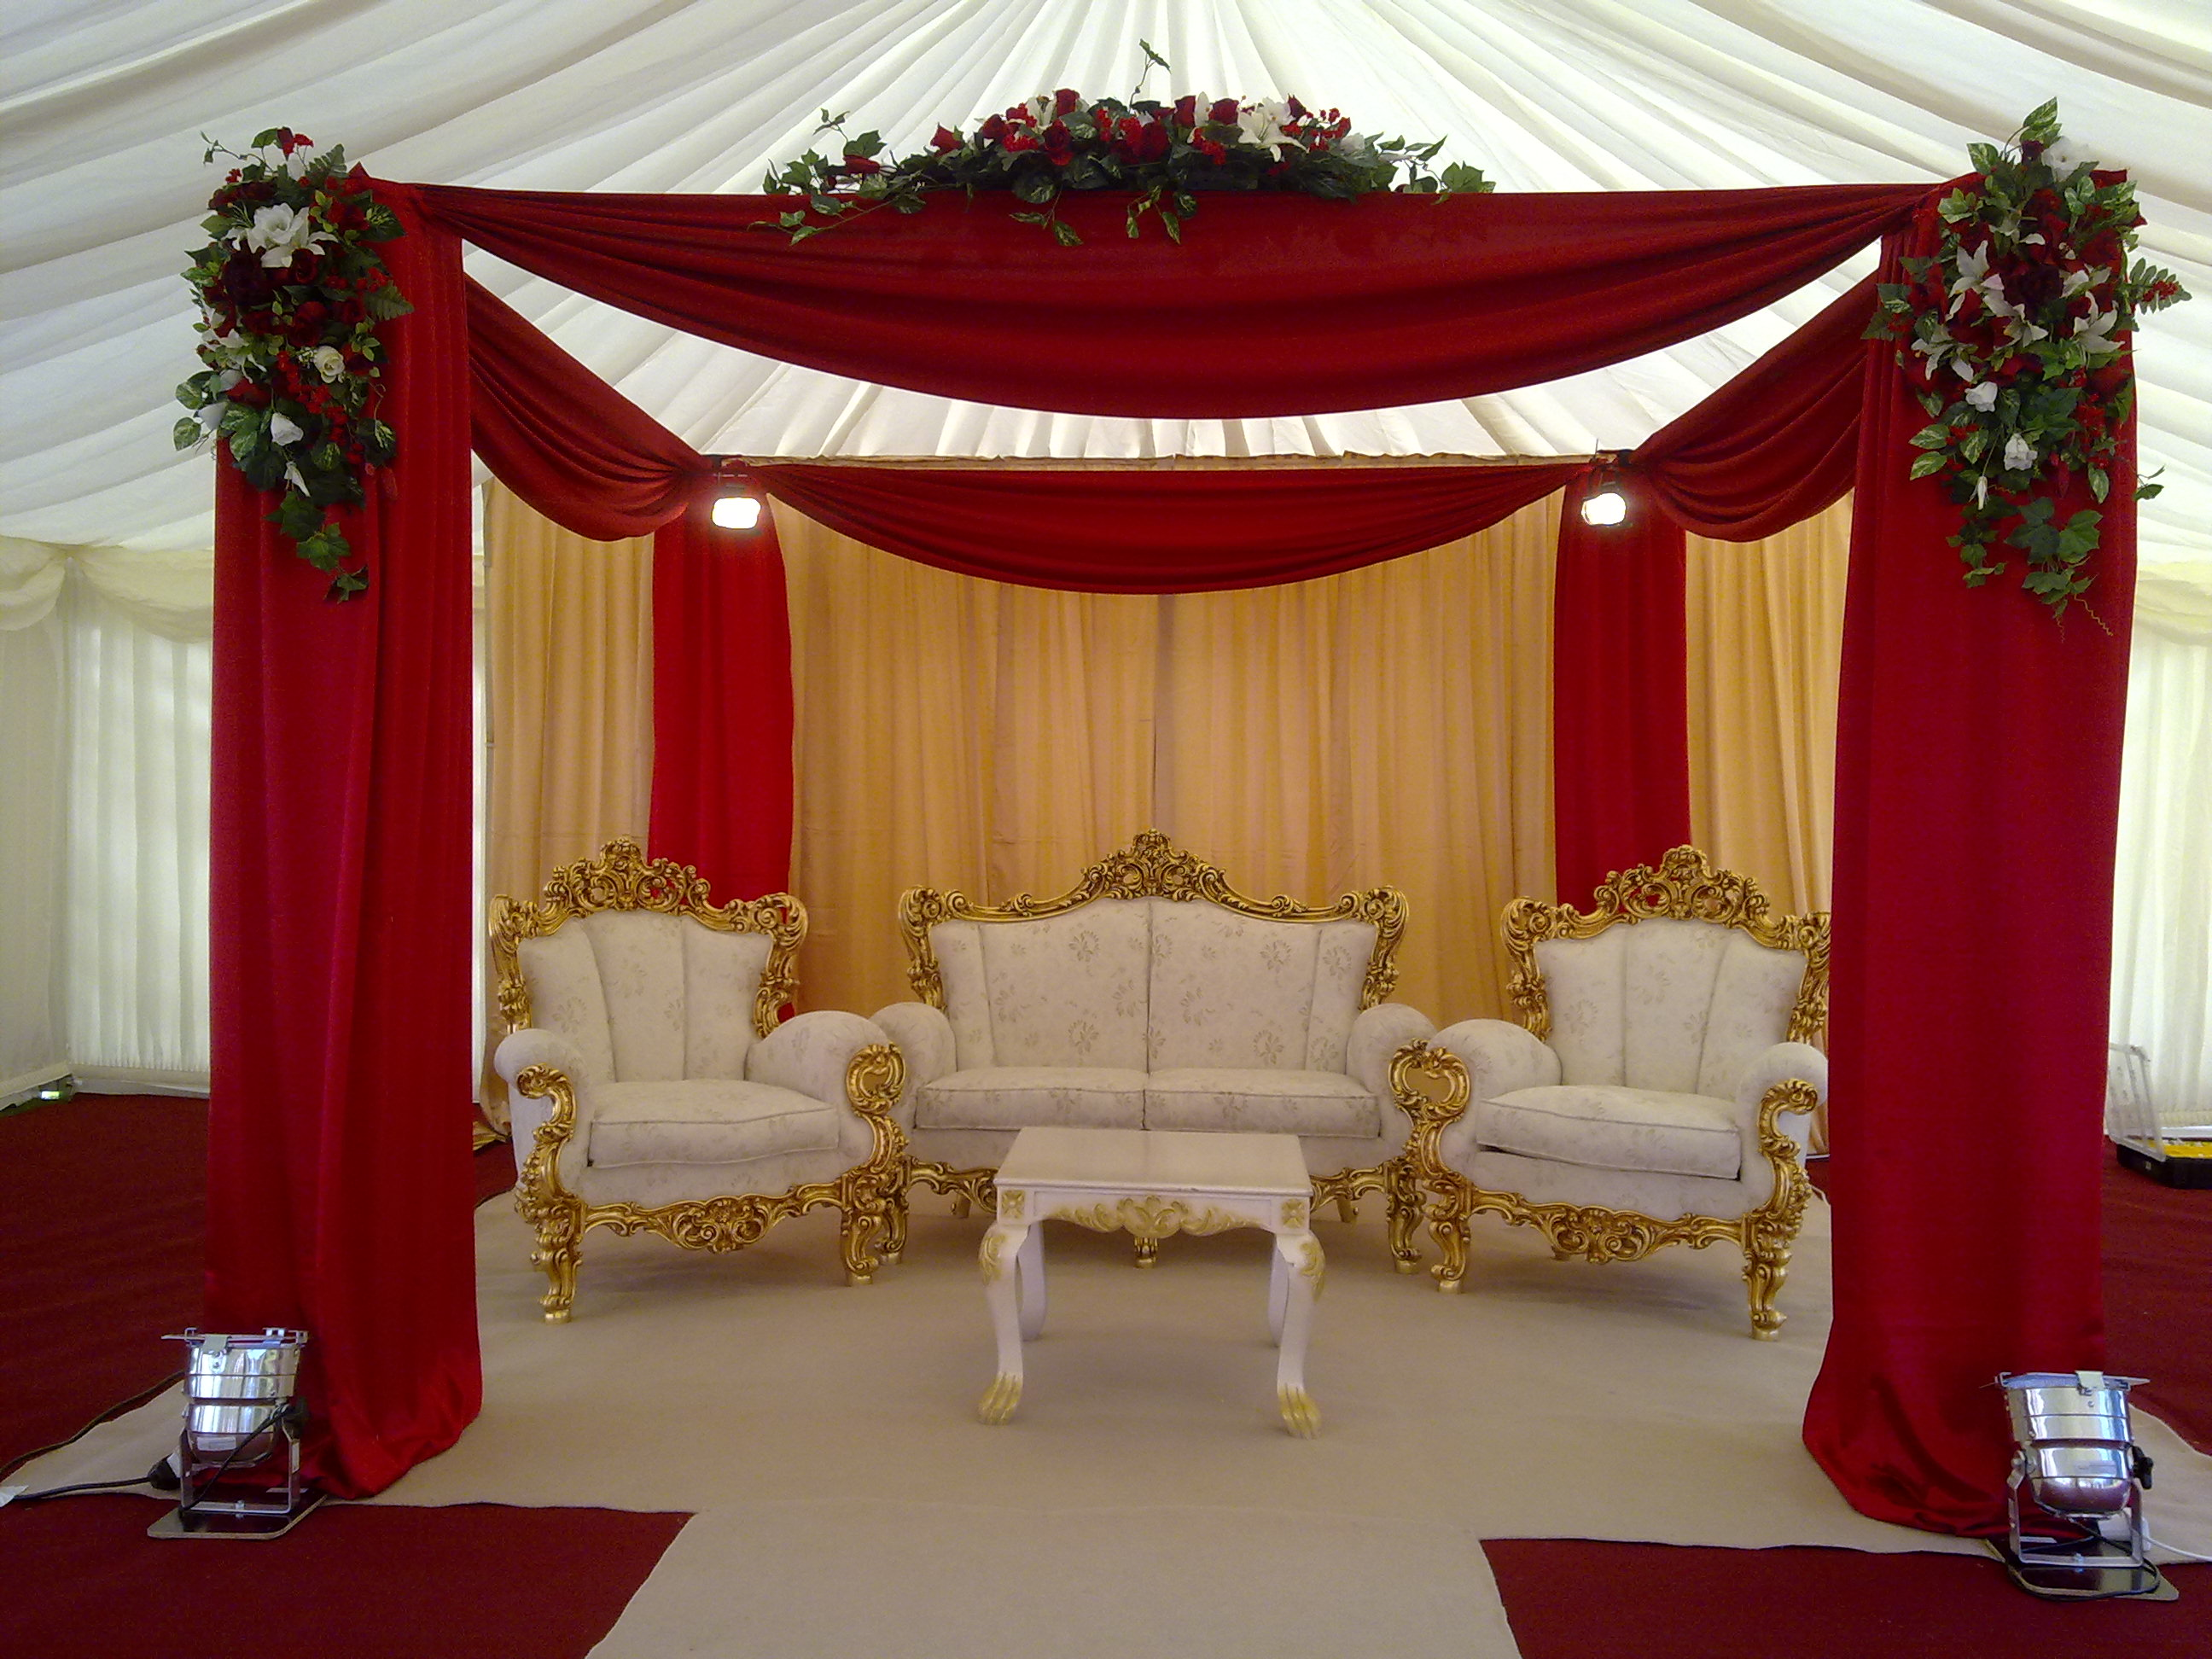 Fusion Decor From Used Wedding Decorations For Sale Uk Image Source Fusiondecor Co